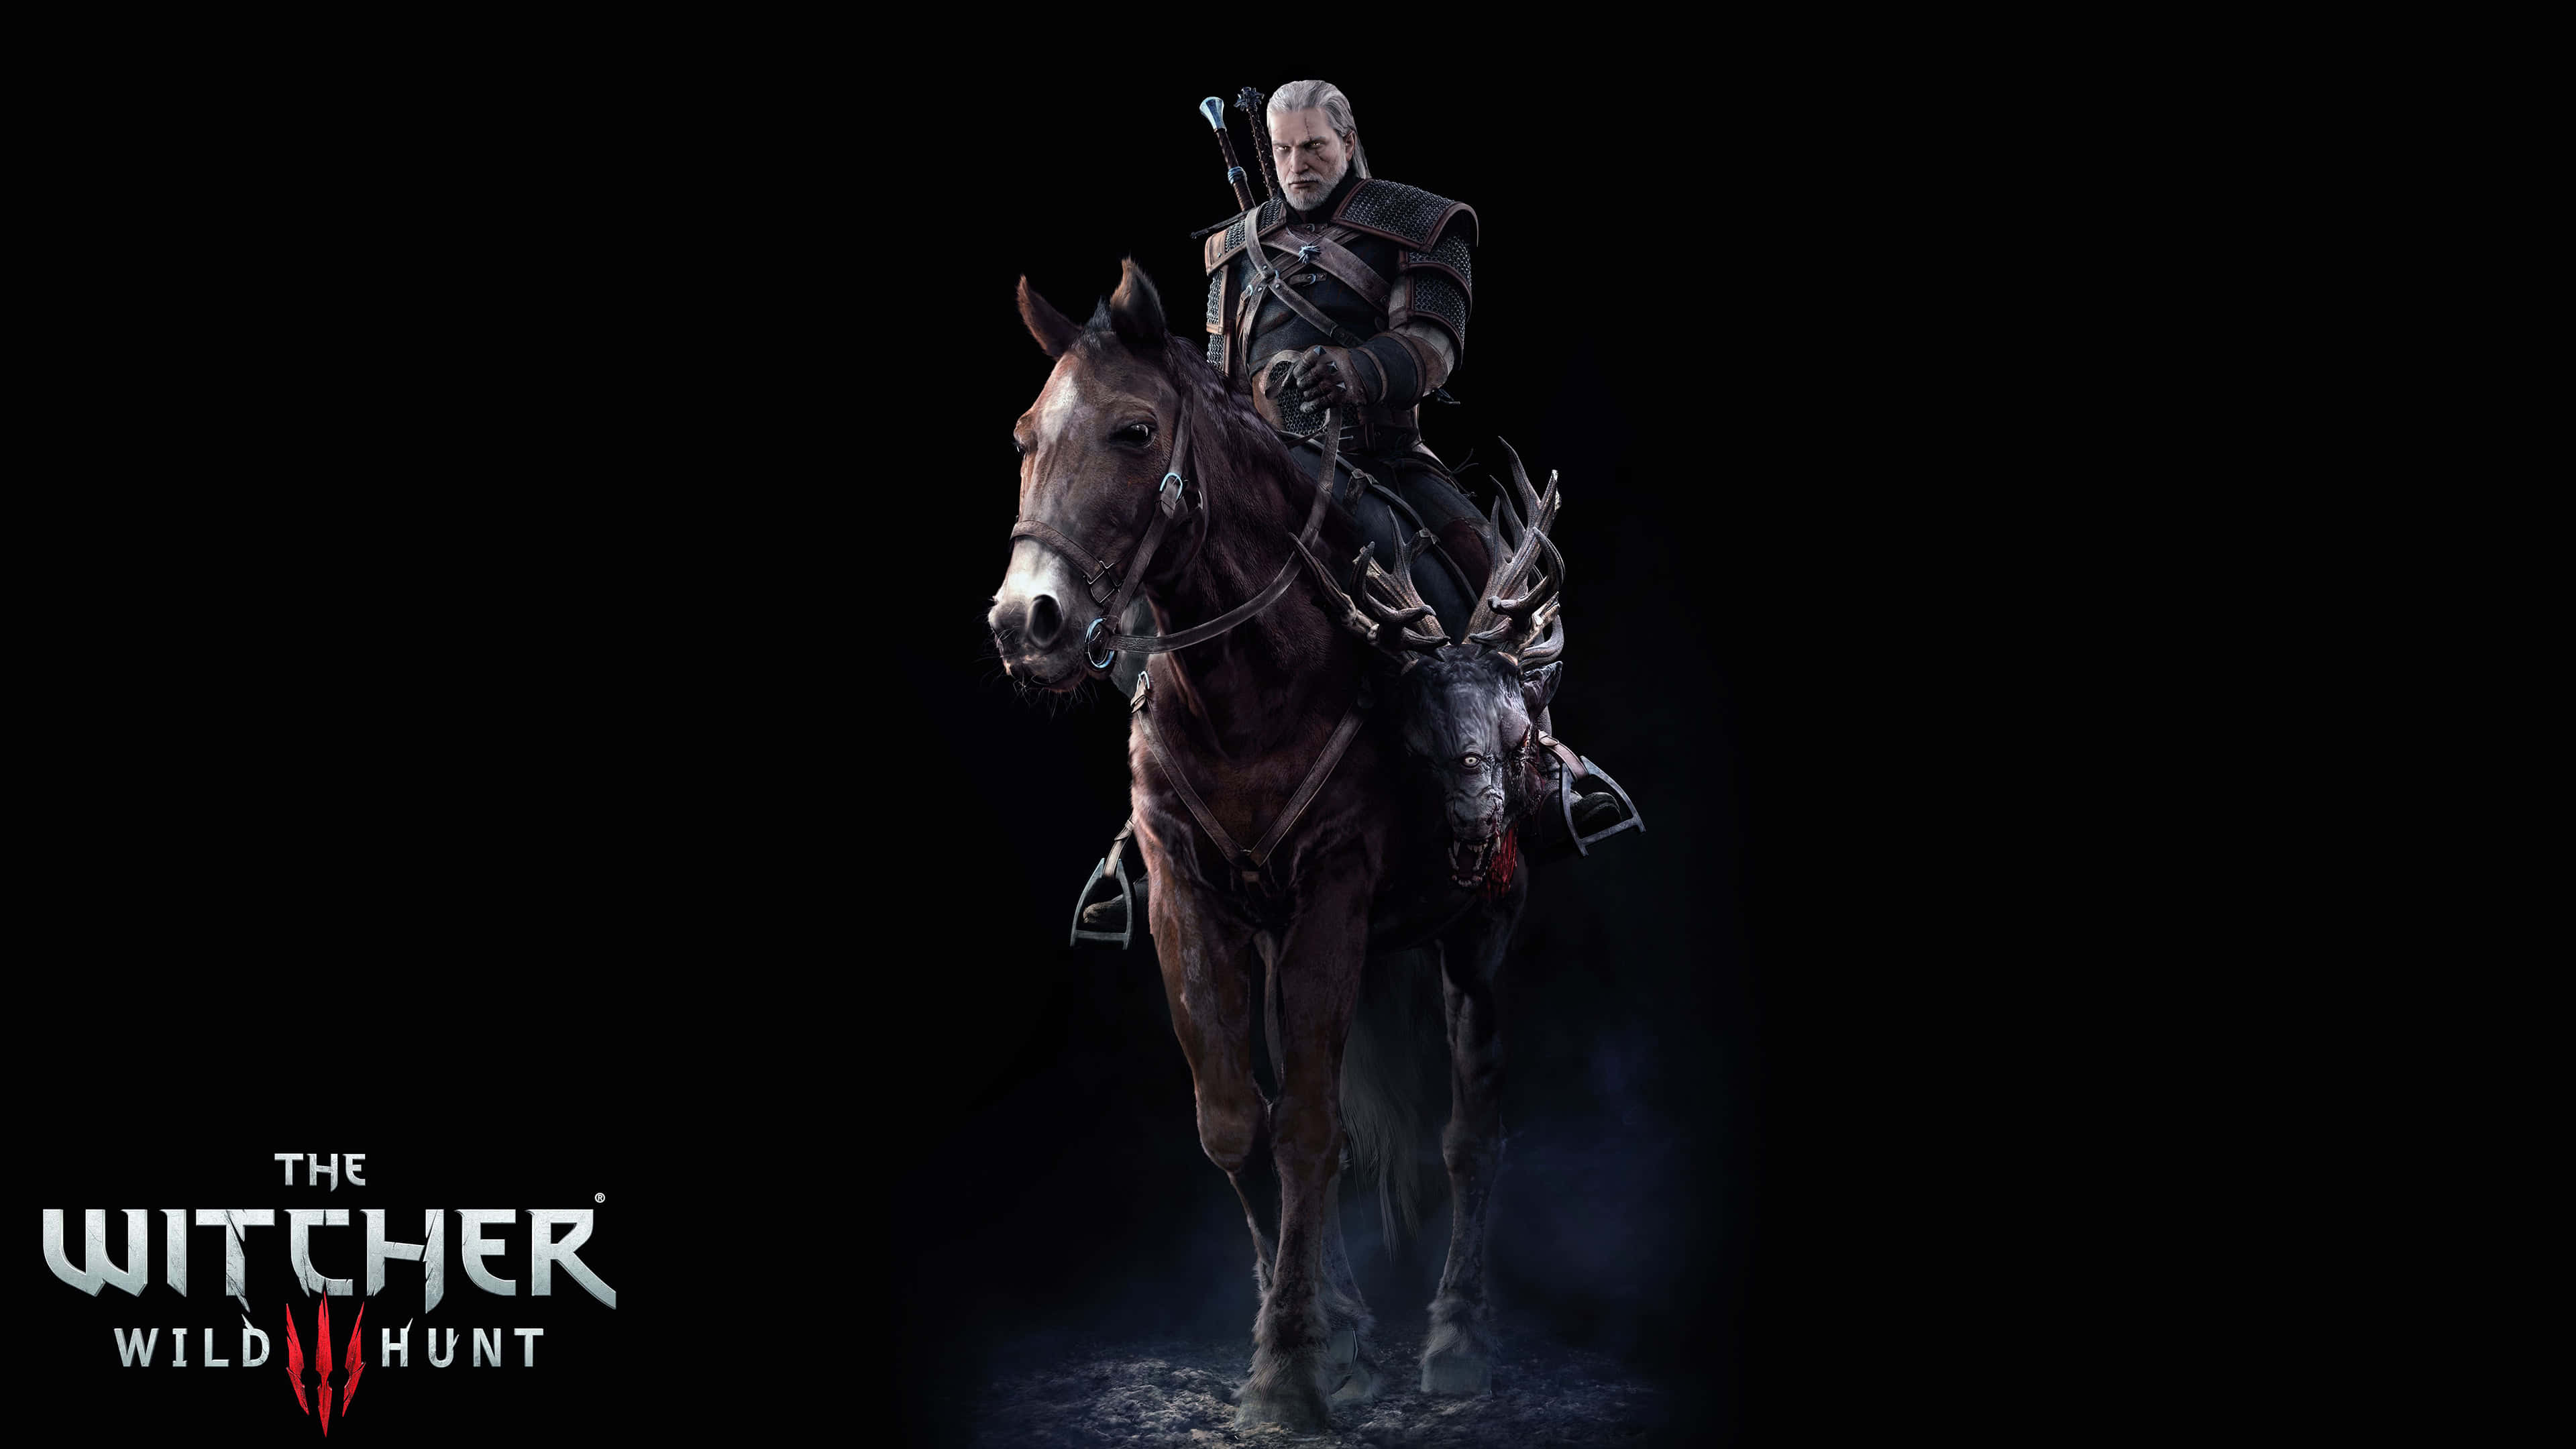 The Witcher 3 Wild Hunt Geralt And Roach Uhd 4k Wallpaper Pixelz